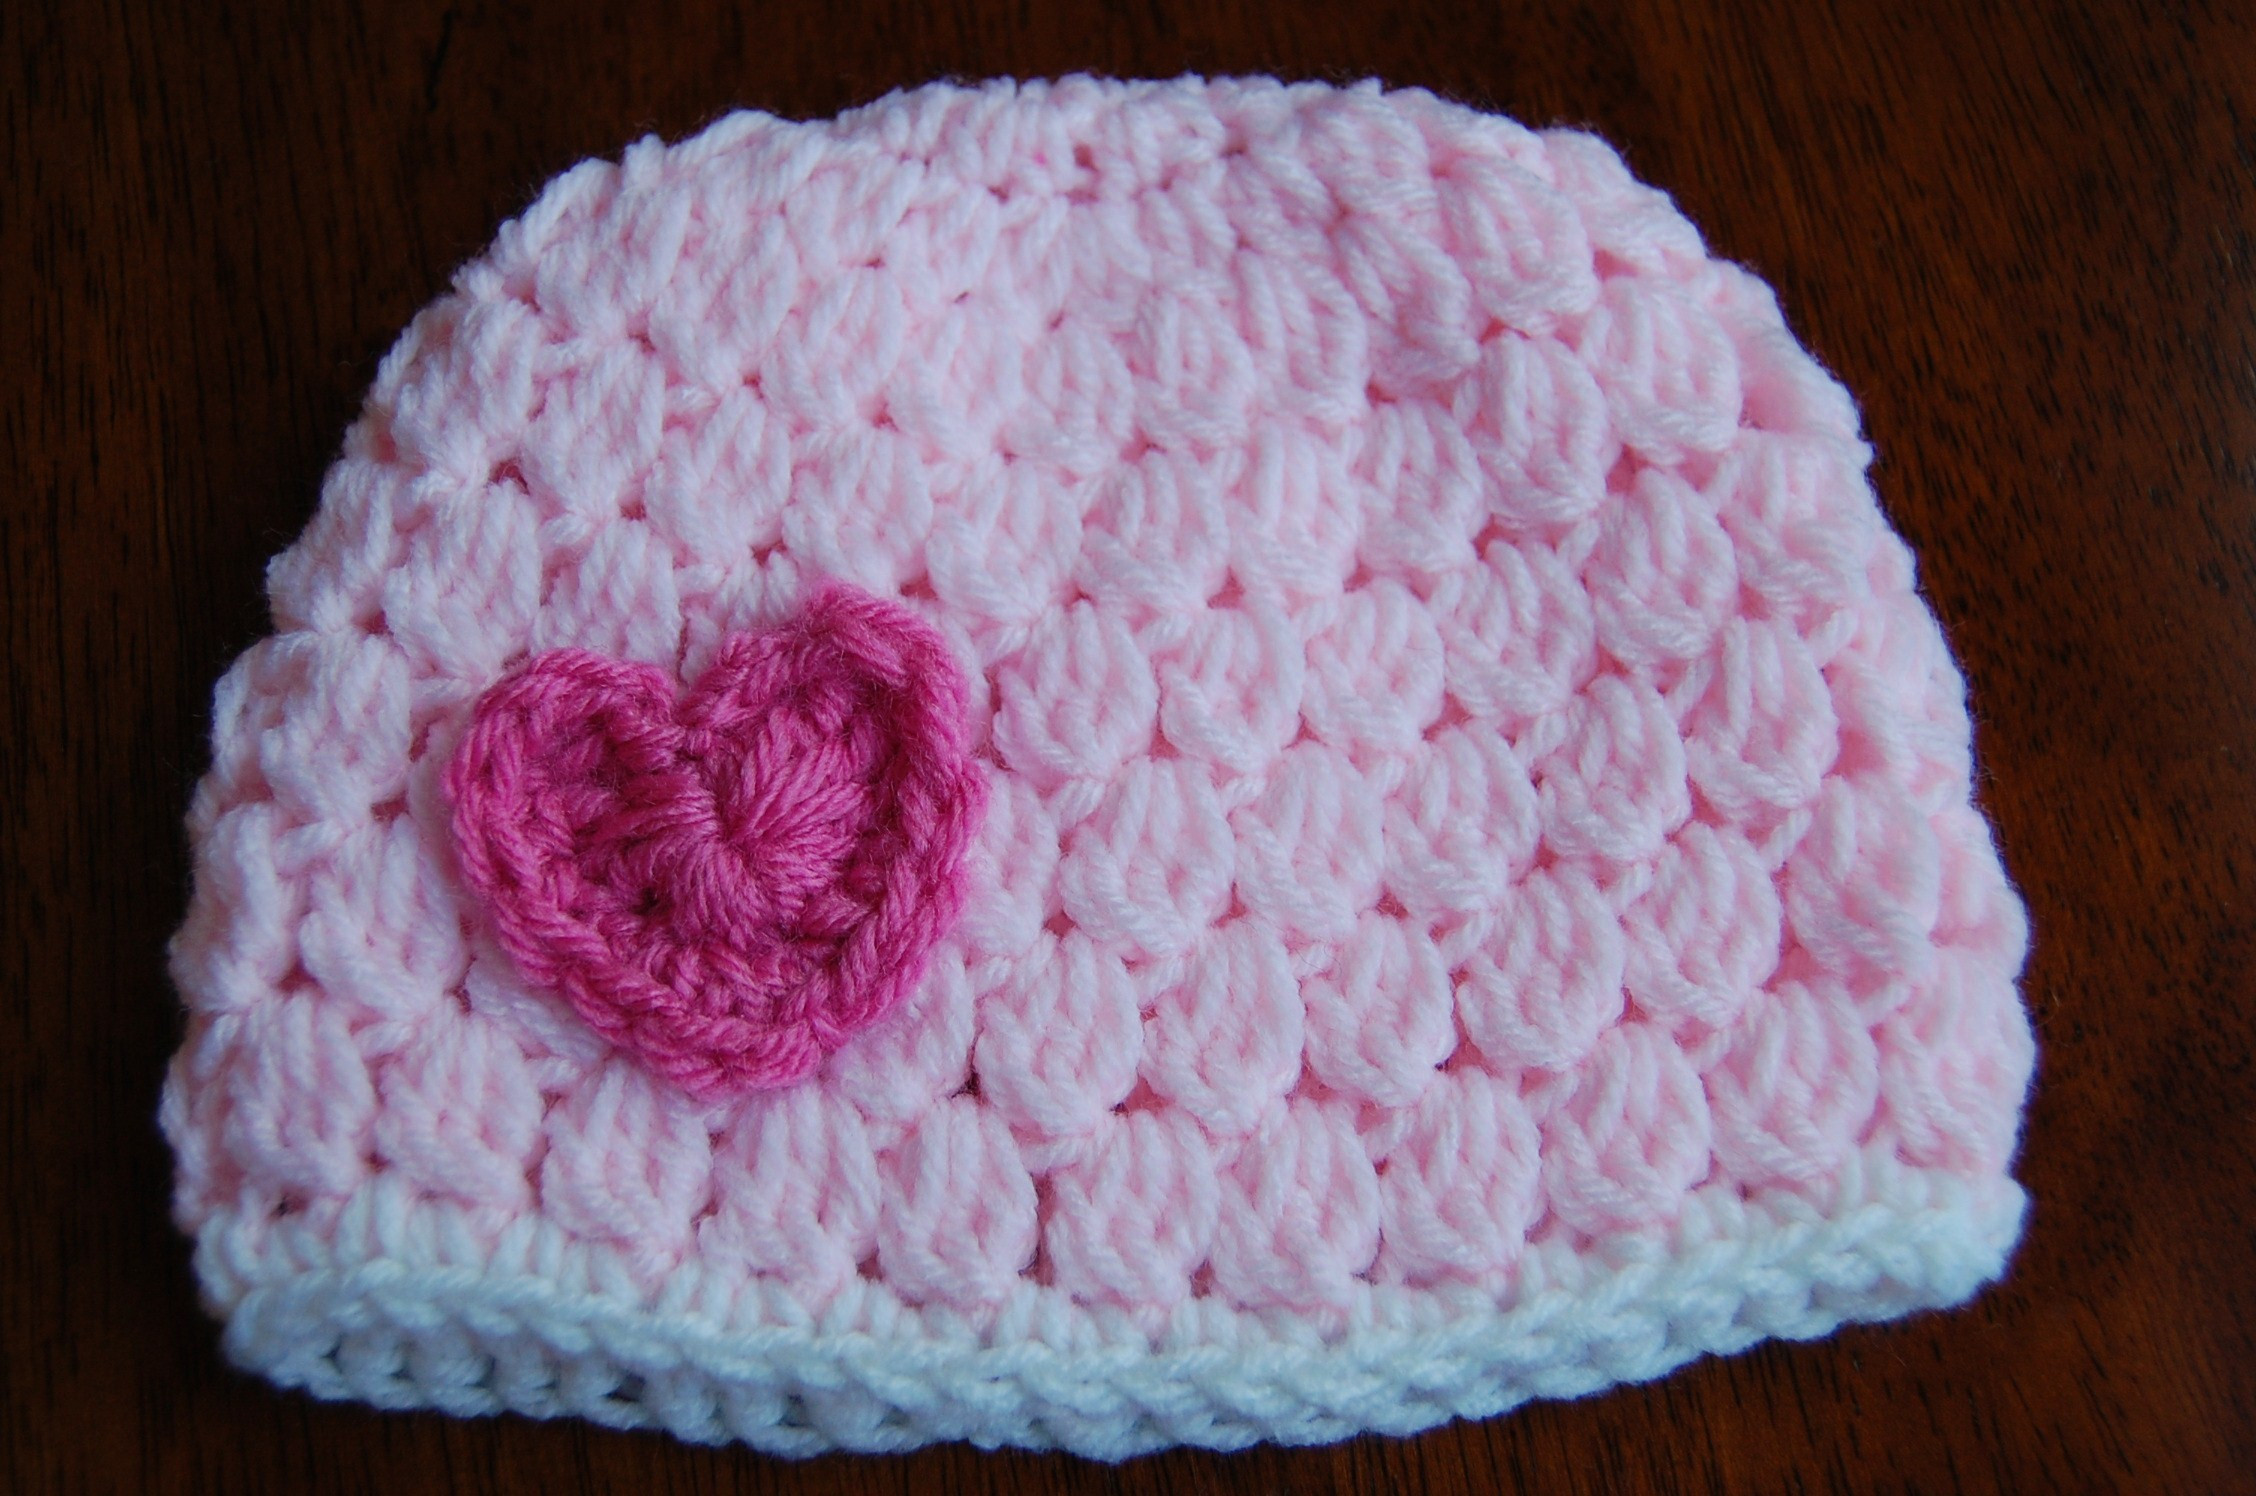 Baby Girl Crochet Patterns Fresh Free Girl S Crochet Hat Pattern with Heart Of Perfect 45 Models Baby Girl Crochet Patterns